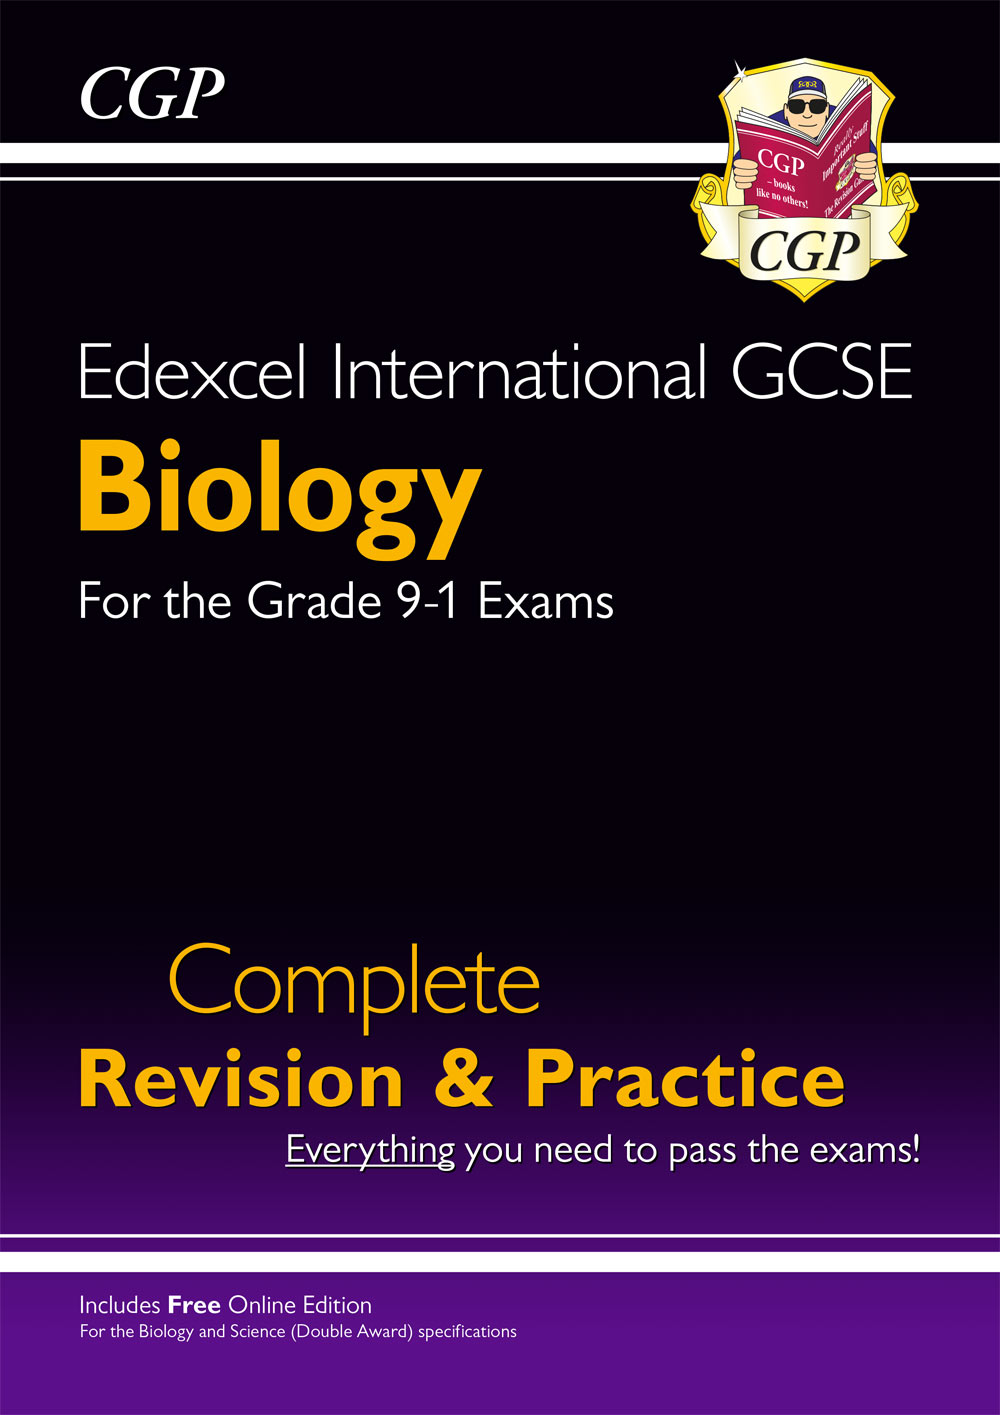 BESI42 - Grade 9-1 Edexcel International GCSE Biology: Complete Revision & Practice with Online Edit